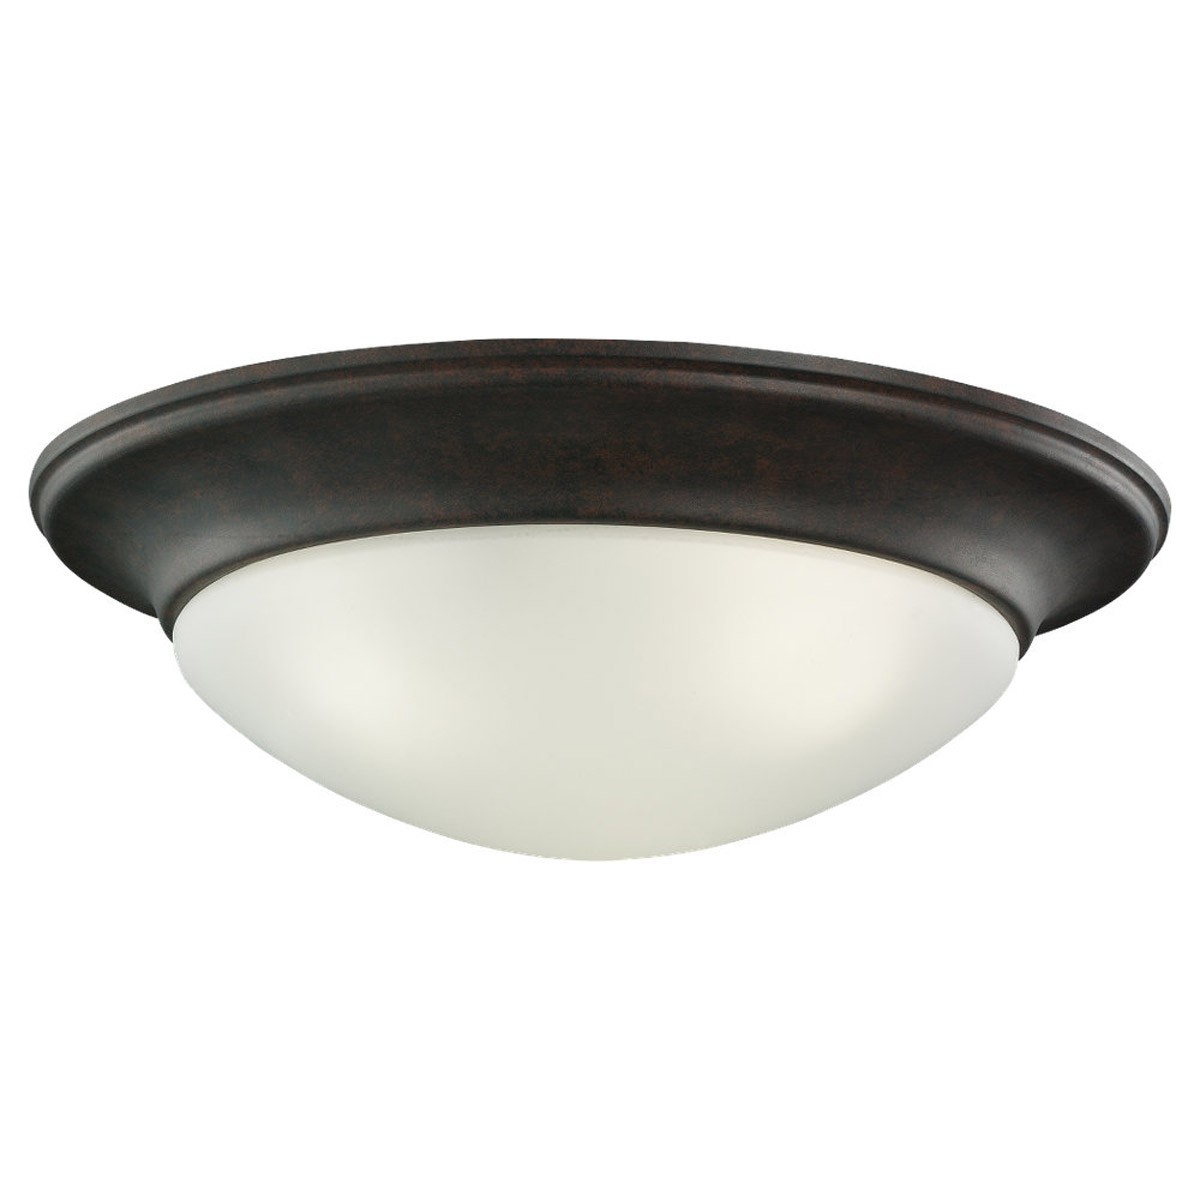 Sea Gull Lighting Nash 3 Light Fluorescent Flush Mount in Misted Bronze 79436BLE-814